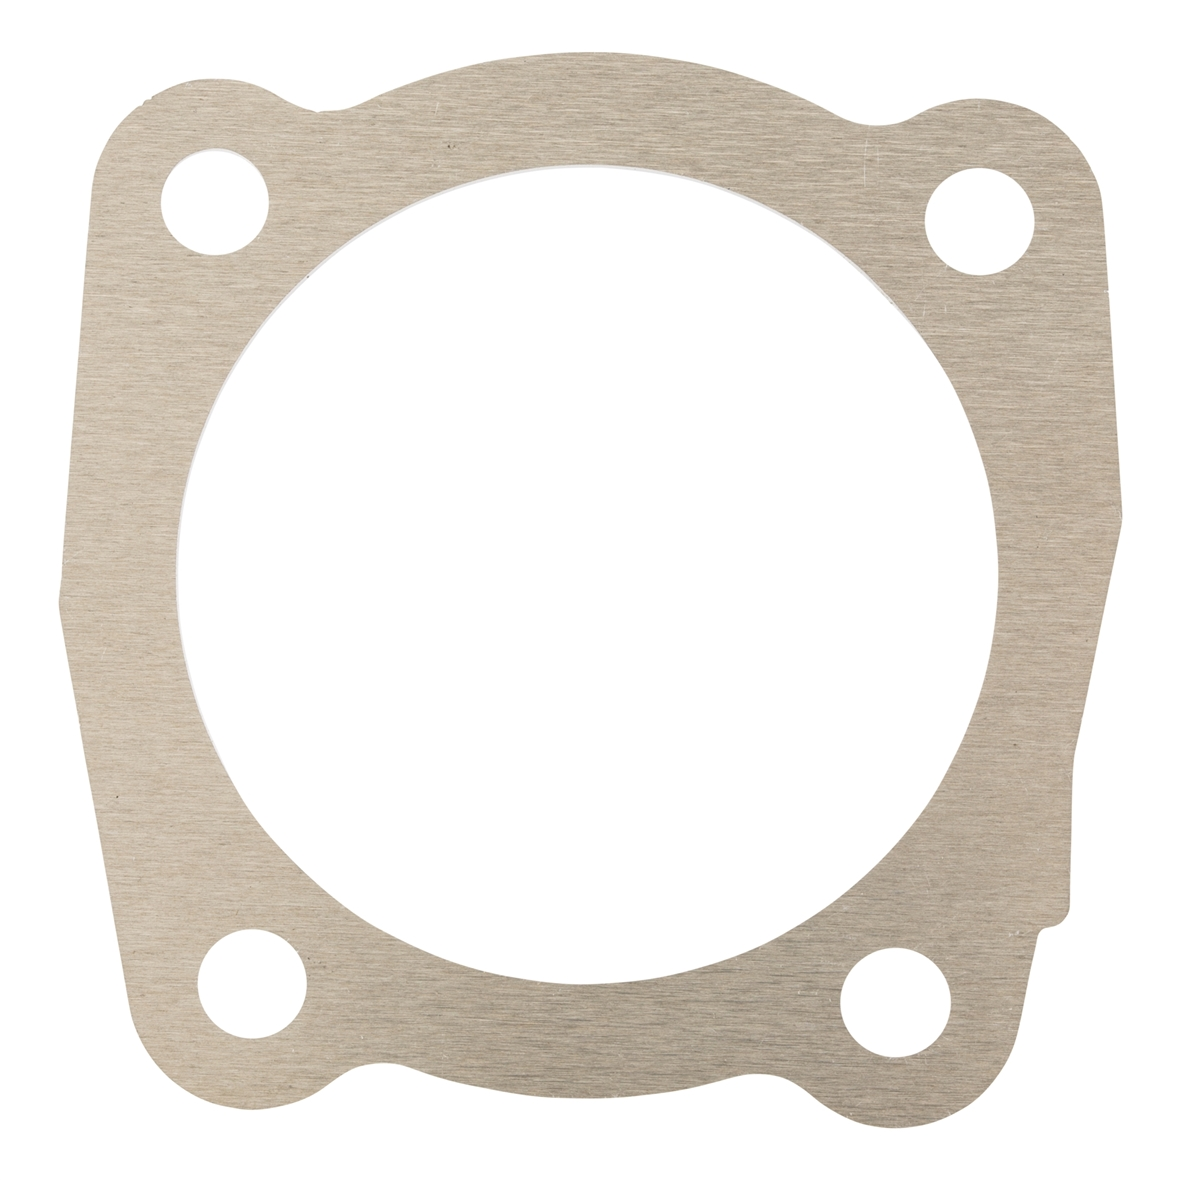 Product Image for 'Gasket Cylinder Head (th) 0.8mmTitle'